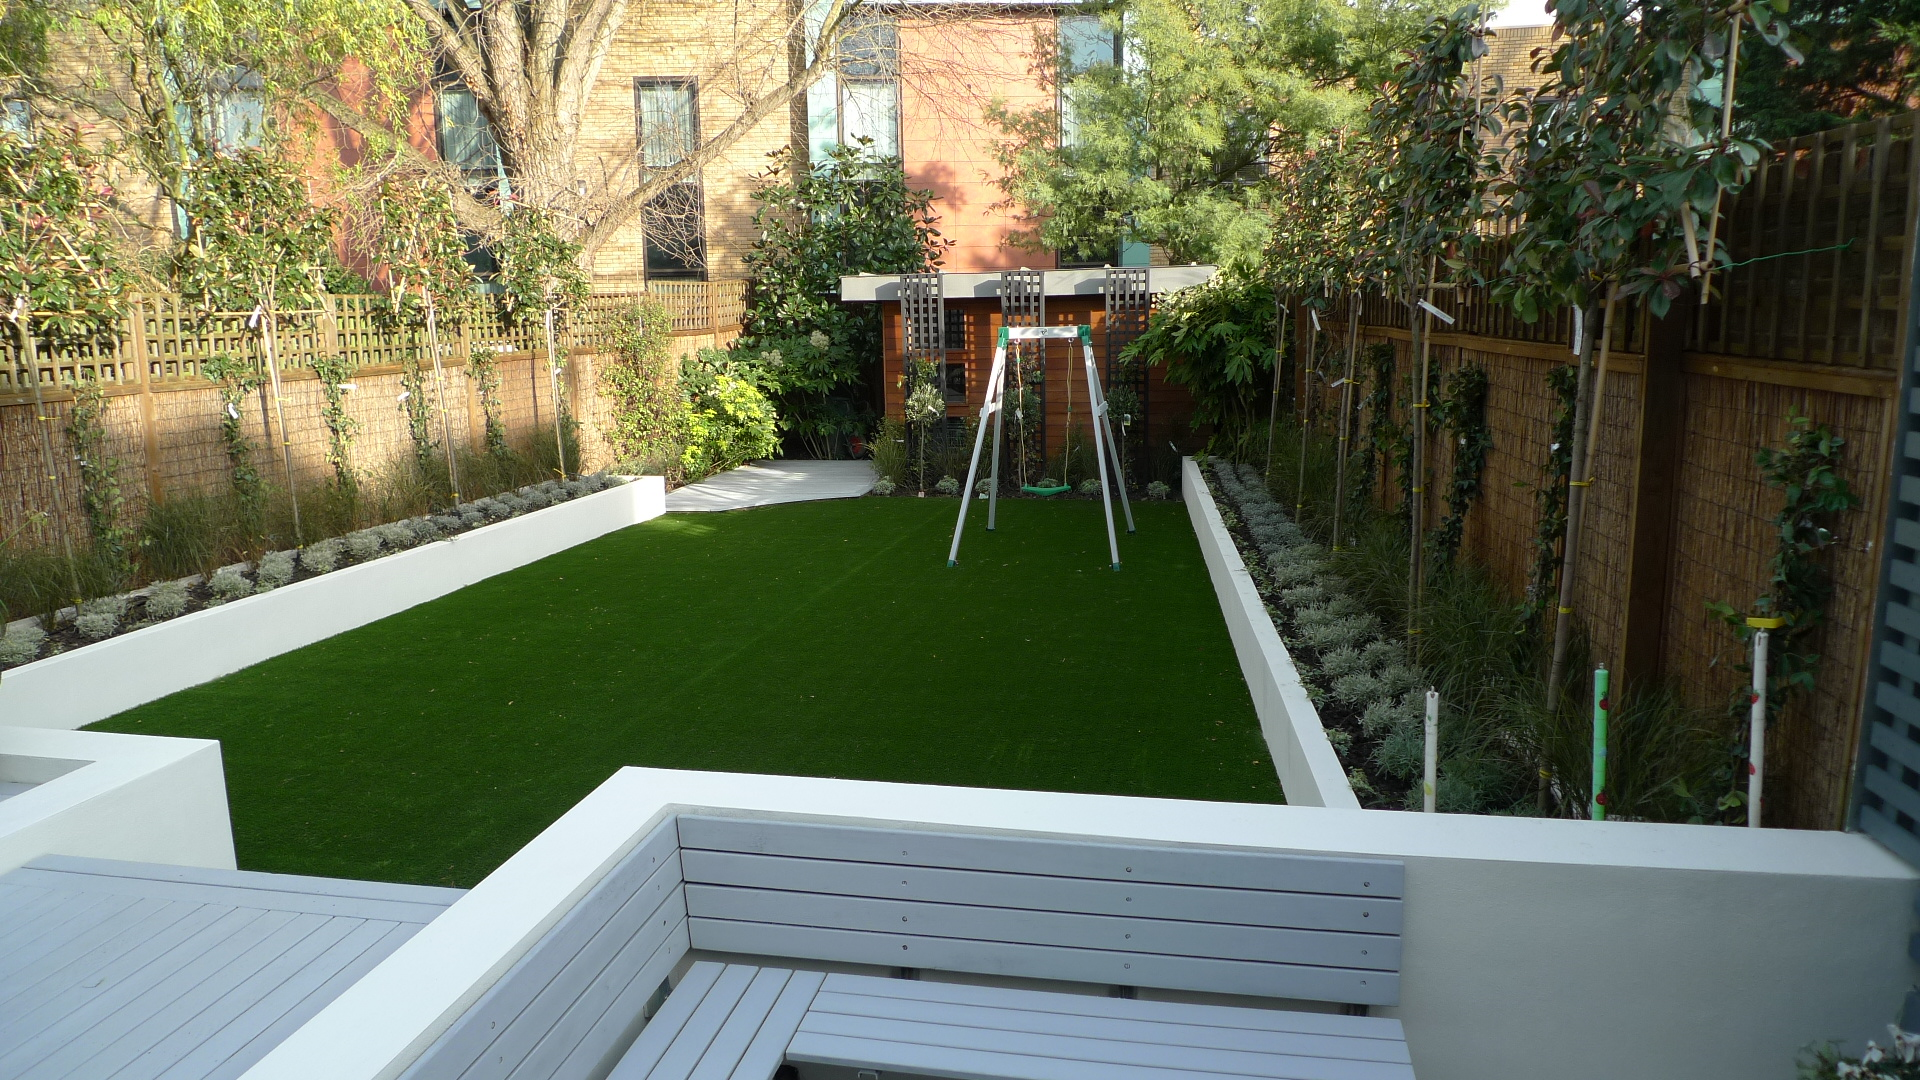 Modern garden design ideas london london garden design for Contemporary garden ideas